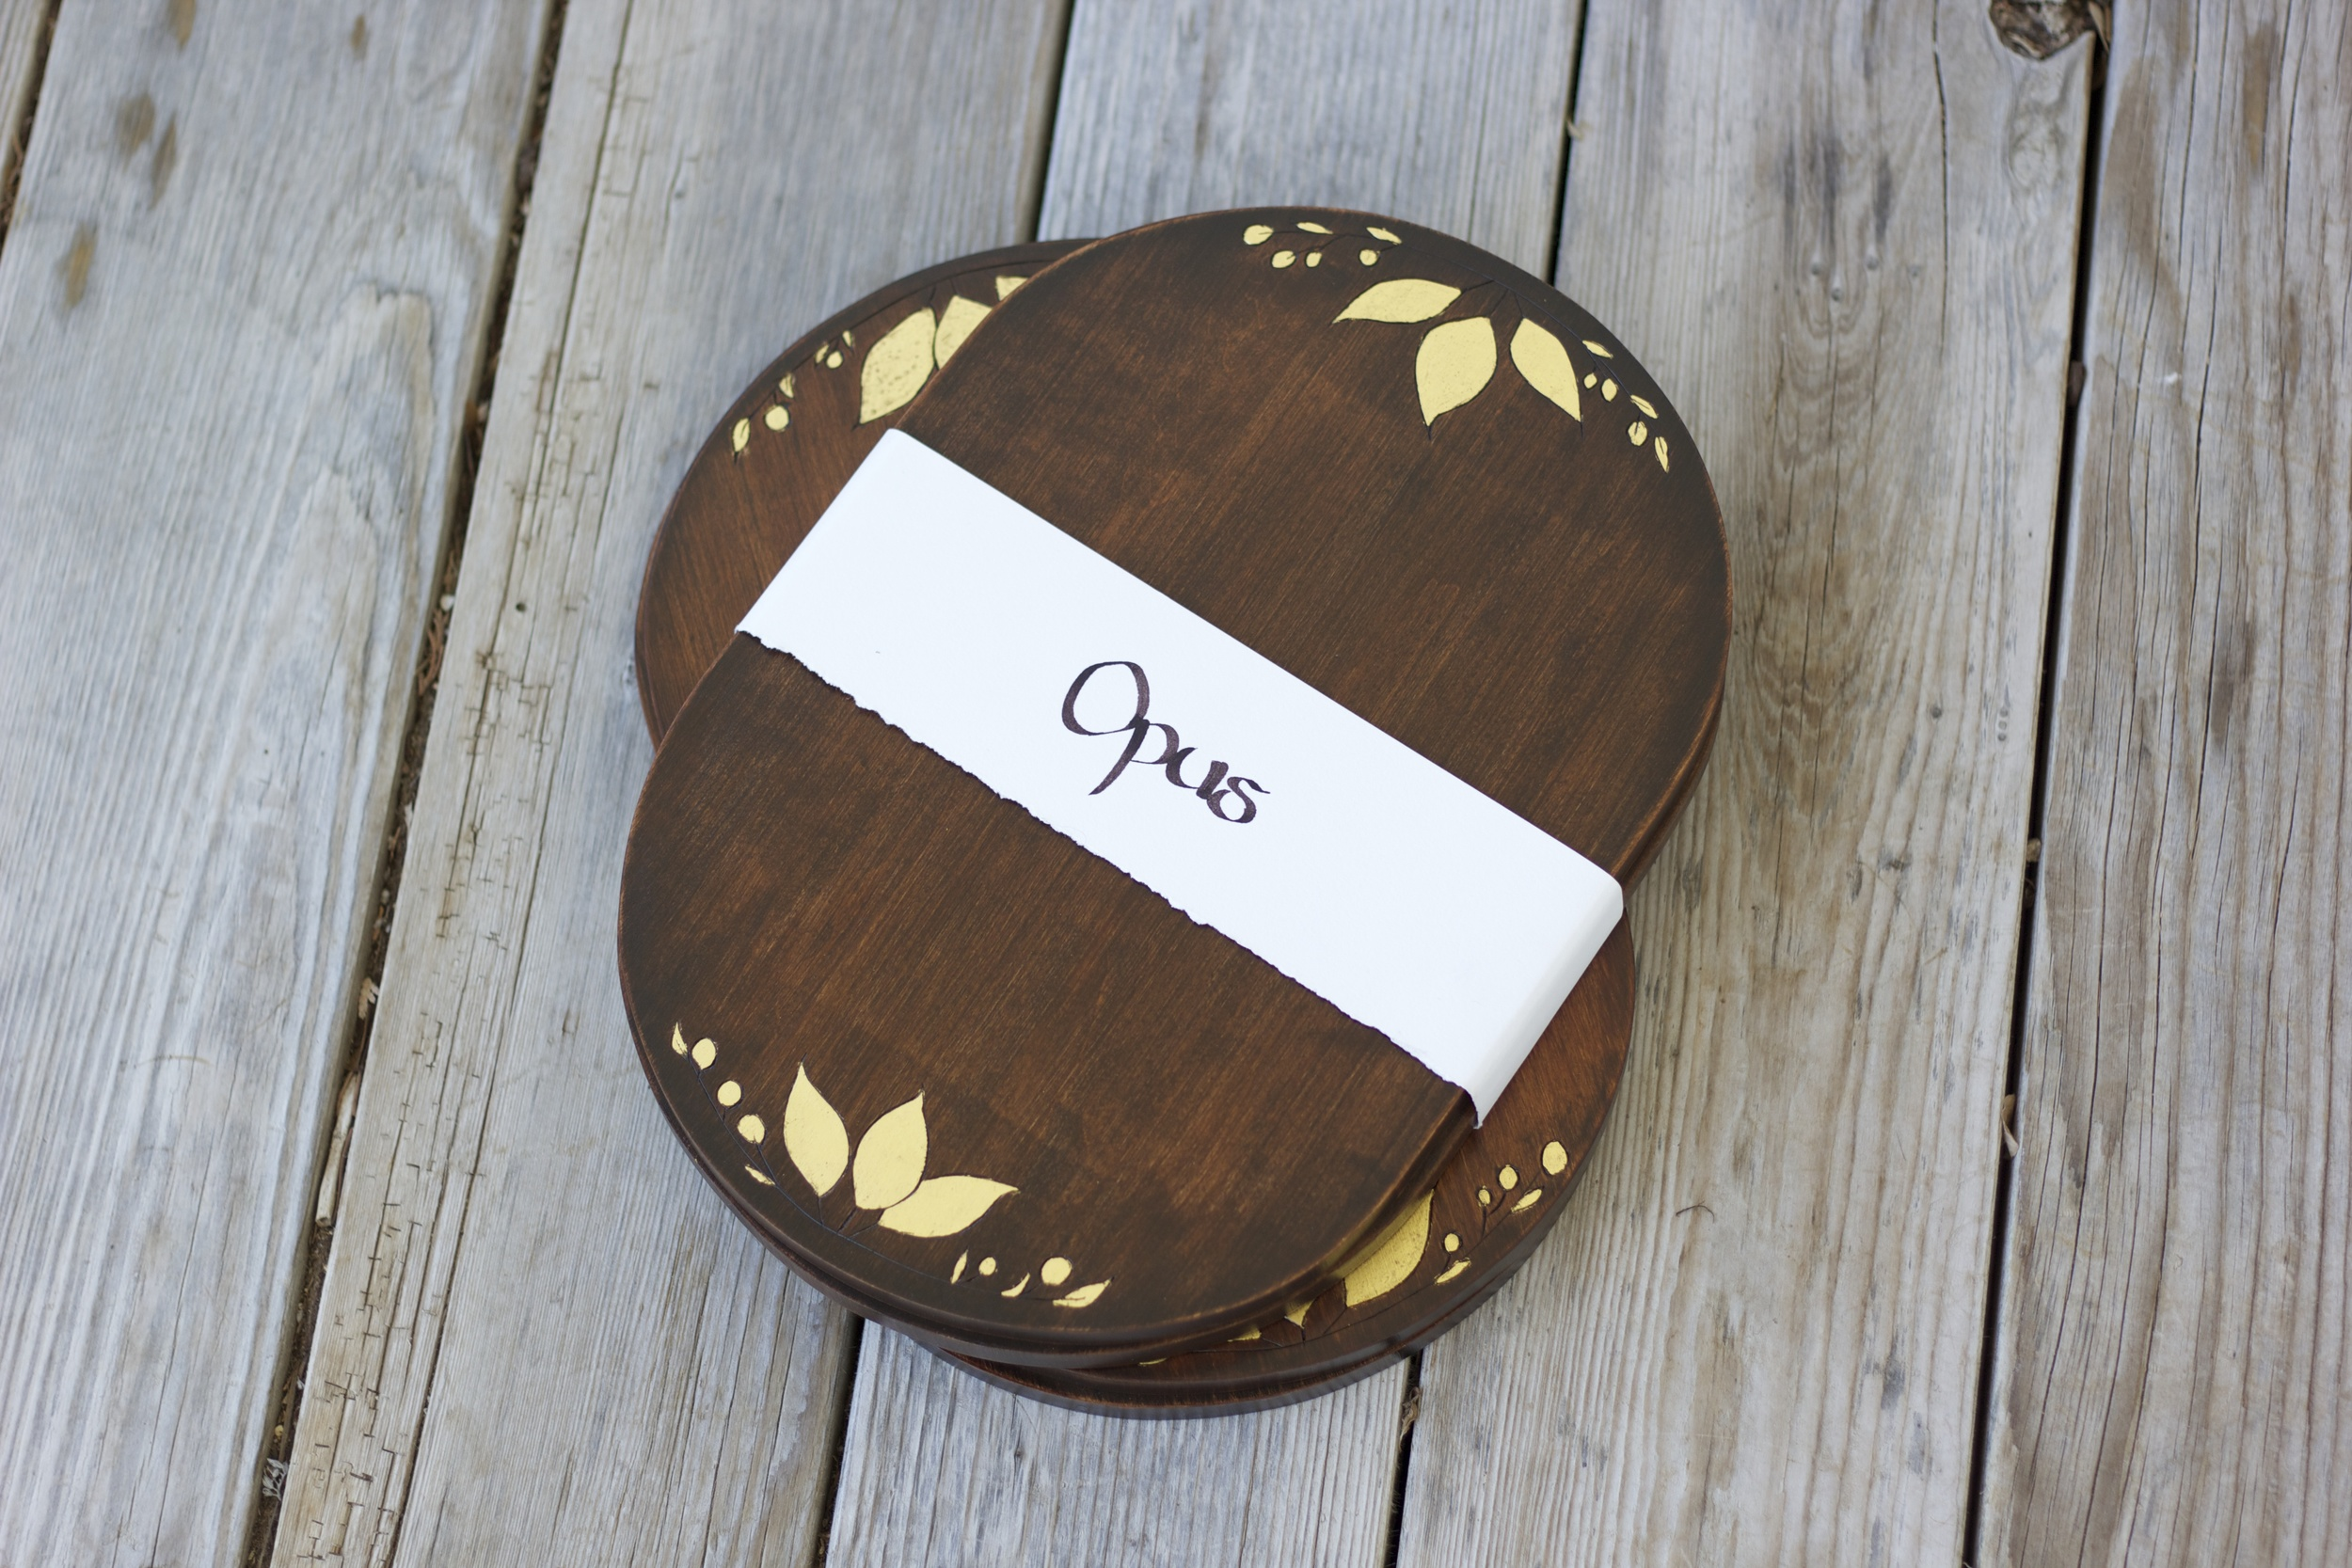 Kickstarter project. Wooden platters, ready for project backers. 2013.